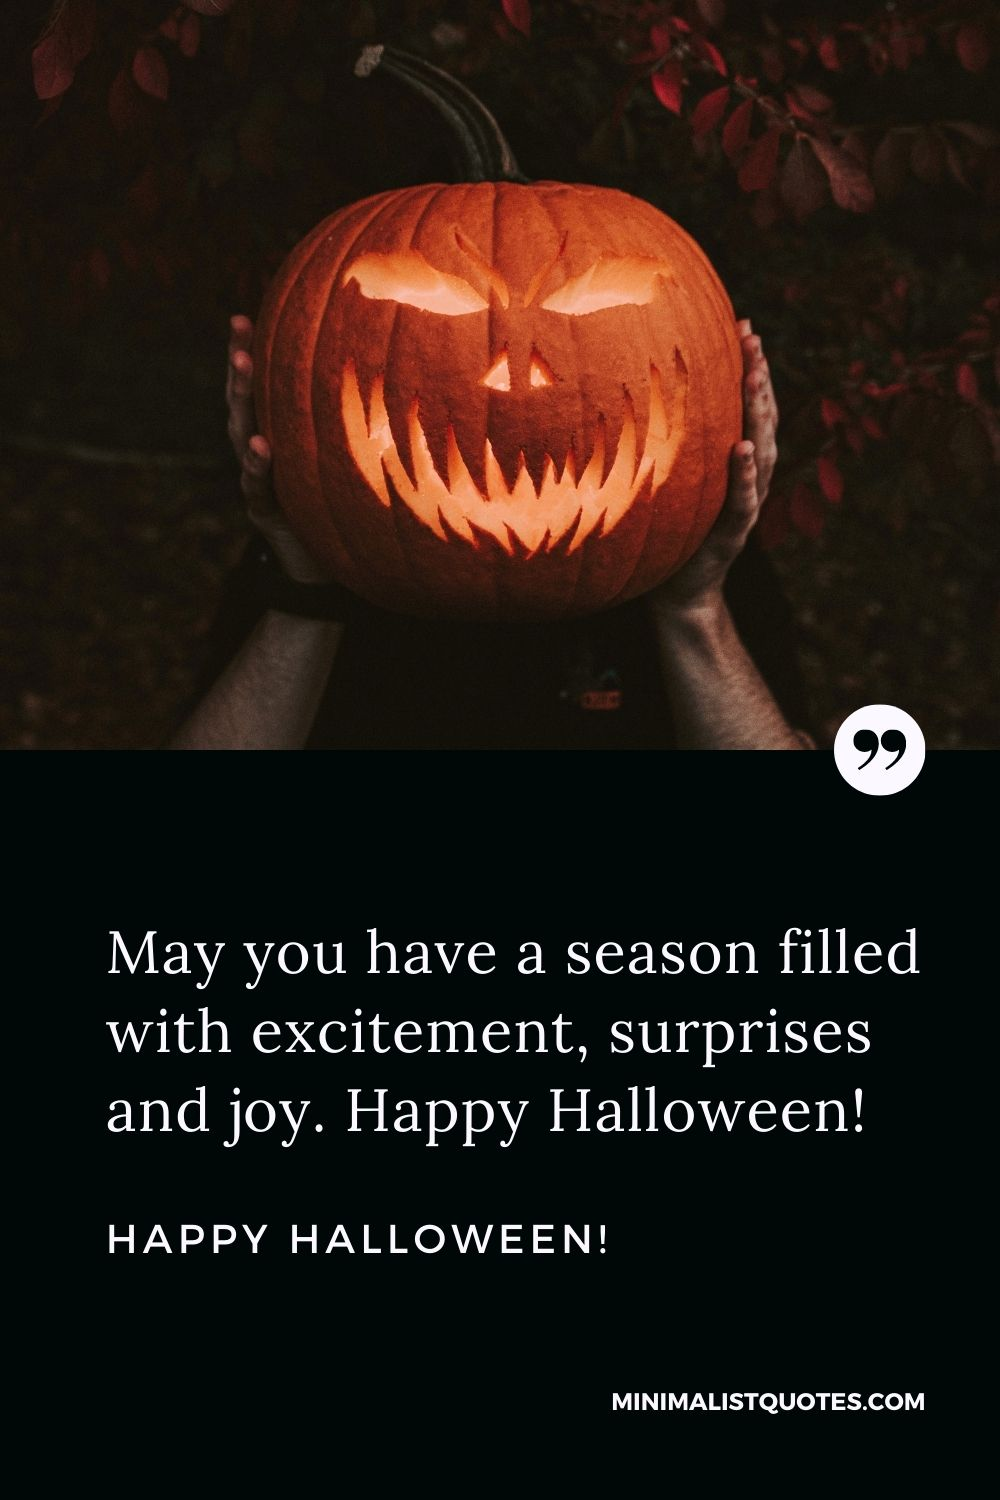 Happy Halloween Wishes - May you have a season filled with excitement, surprises and joy.